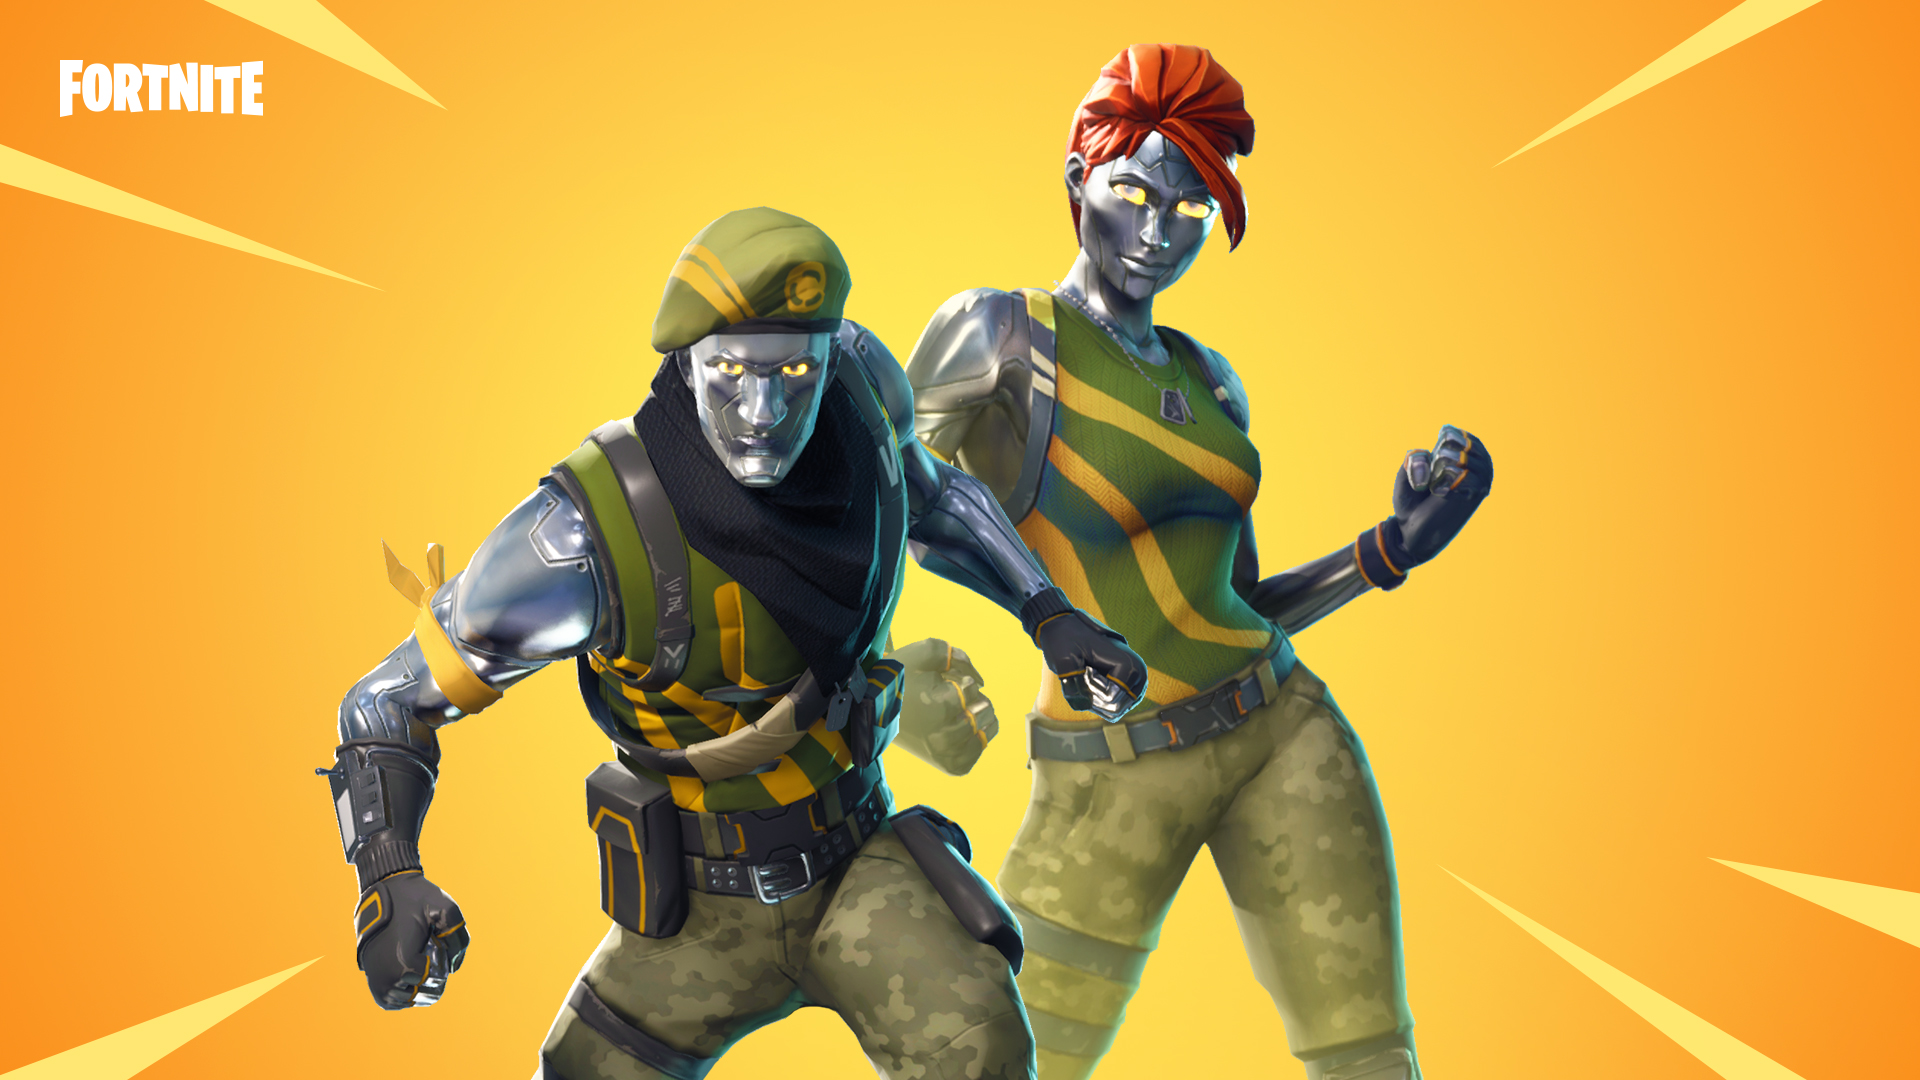 Fortnite Physical Copies Are Going For Around 450 On Ebay Right Now